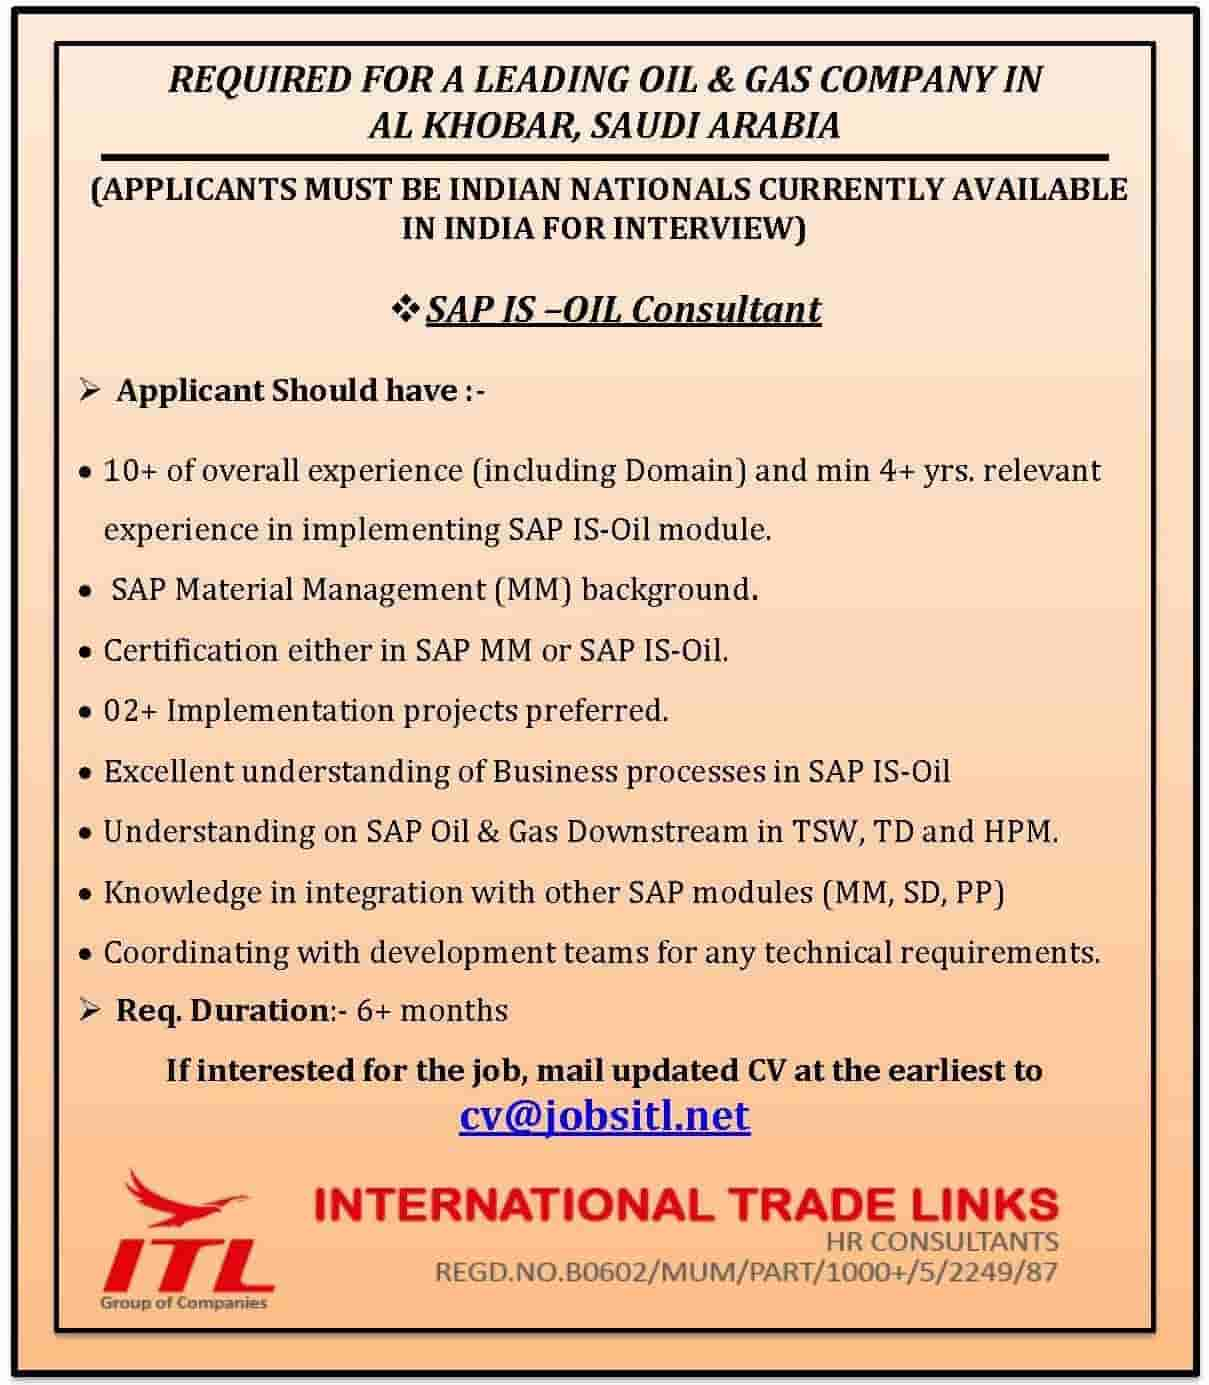 A Leading Oil U0026 Gas Co, Al Khobar, Saudi Looking For SAP IS   Oil Consultant